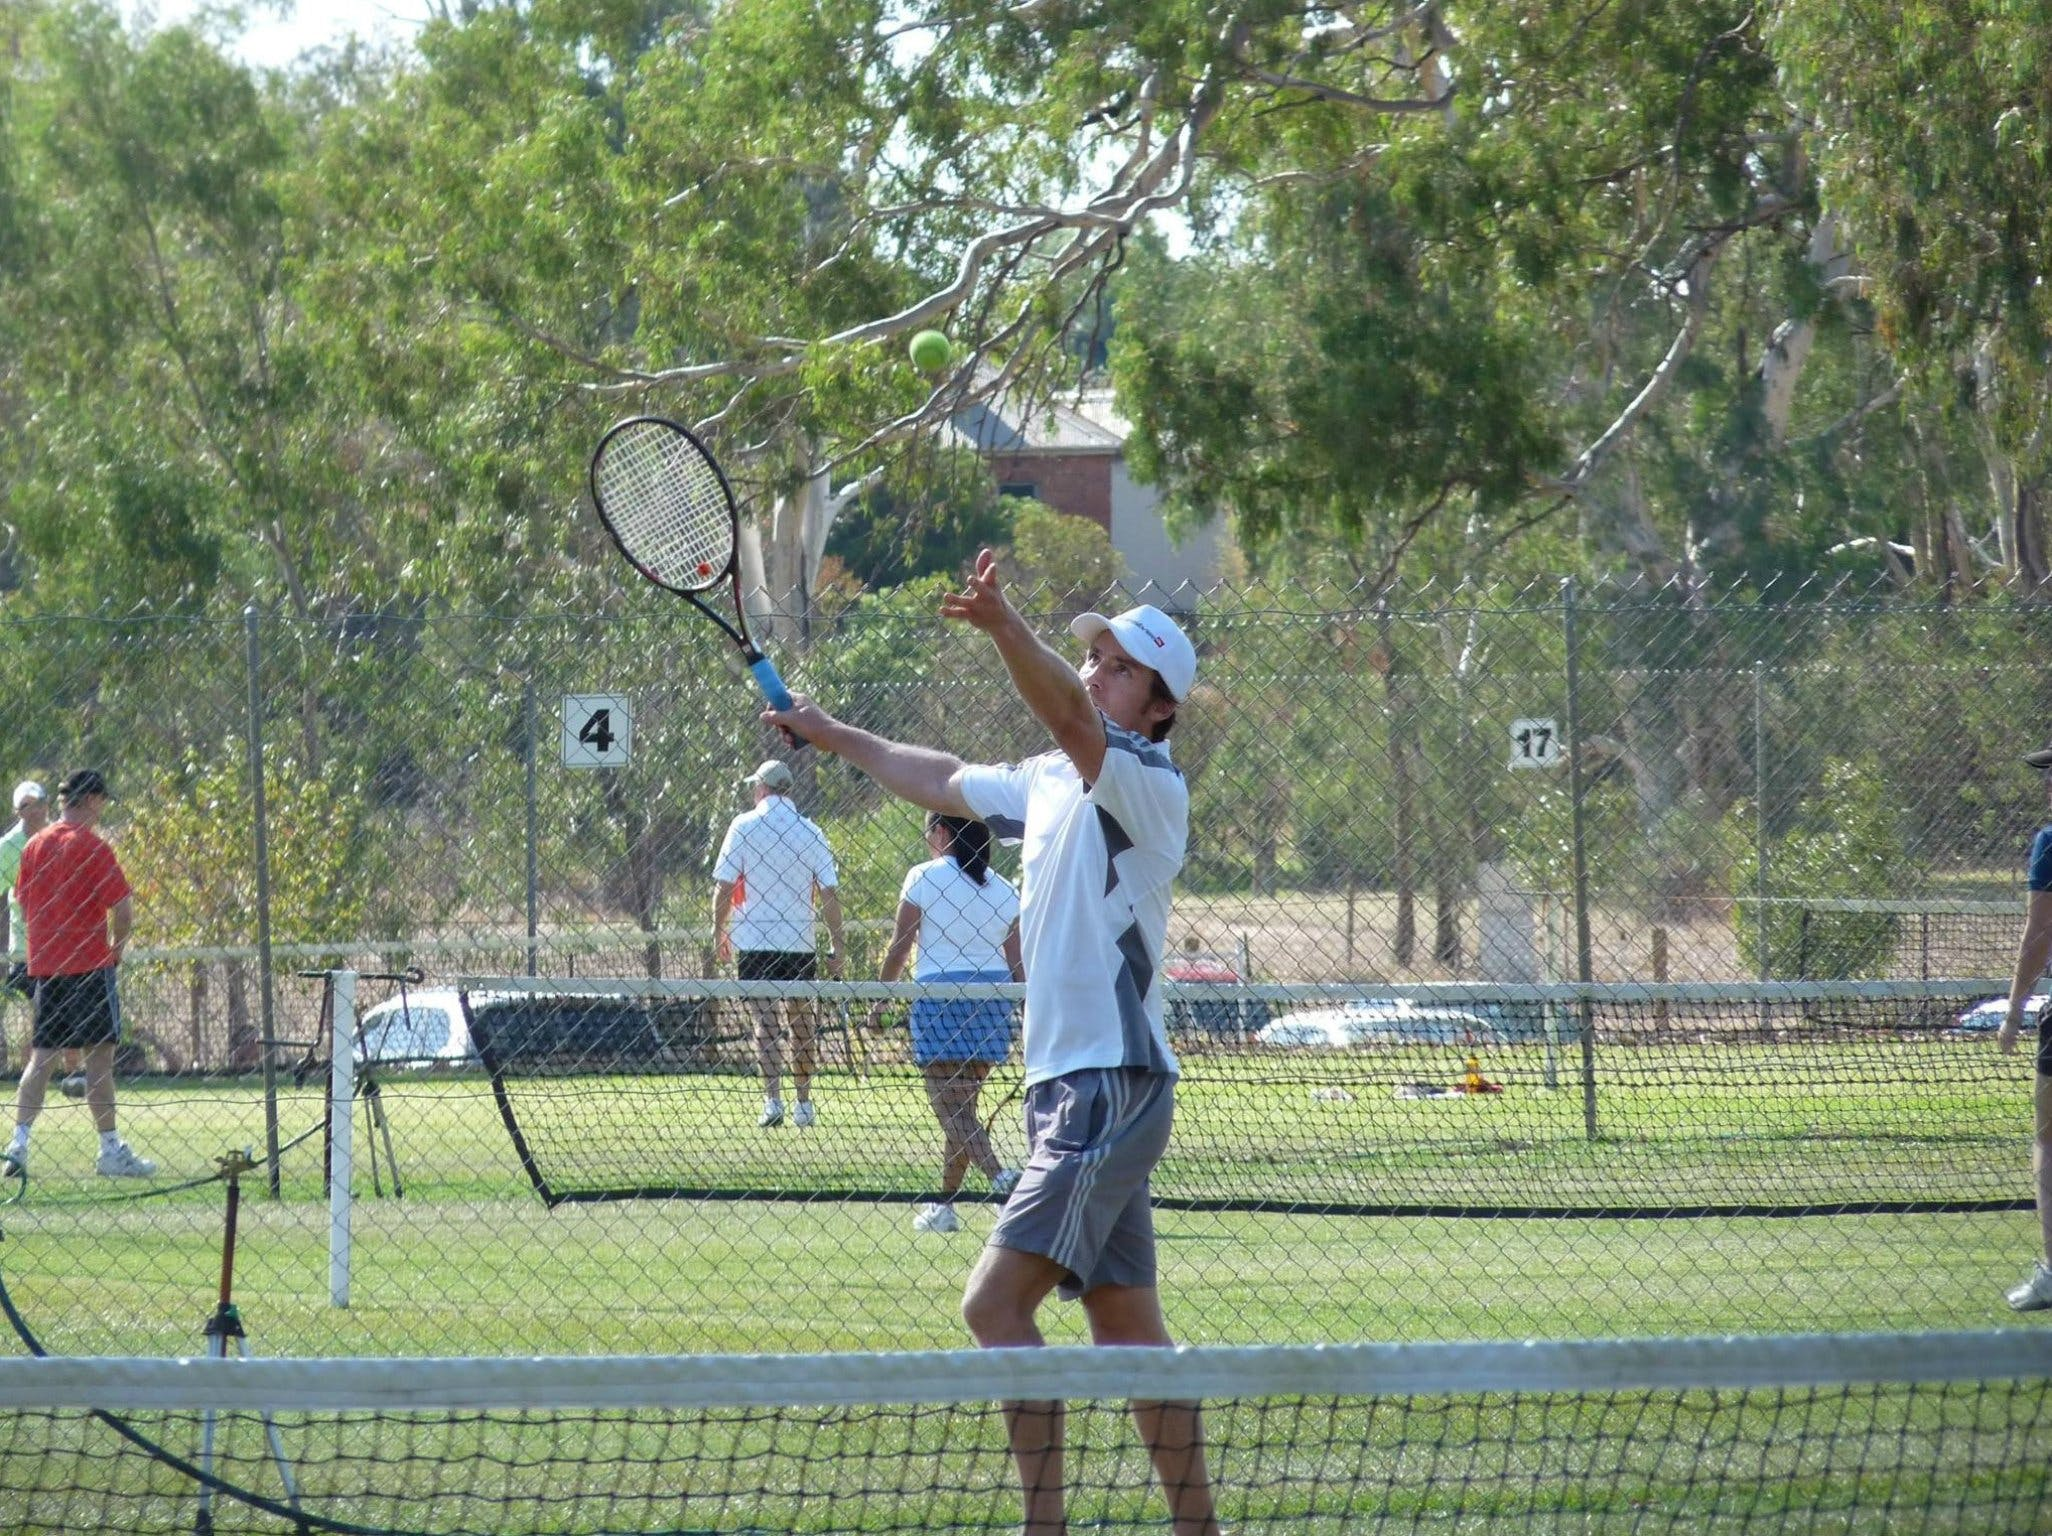 Corowa Easter Lawn Tennis Tournament - Mount Gambier Accommodation